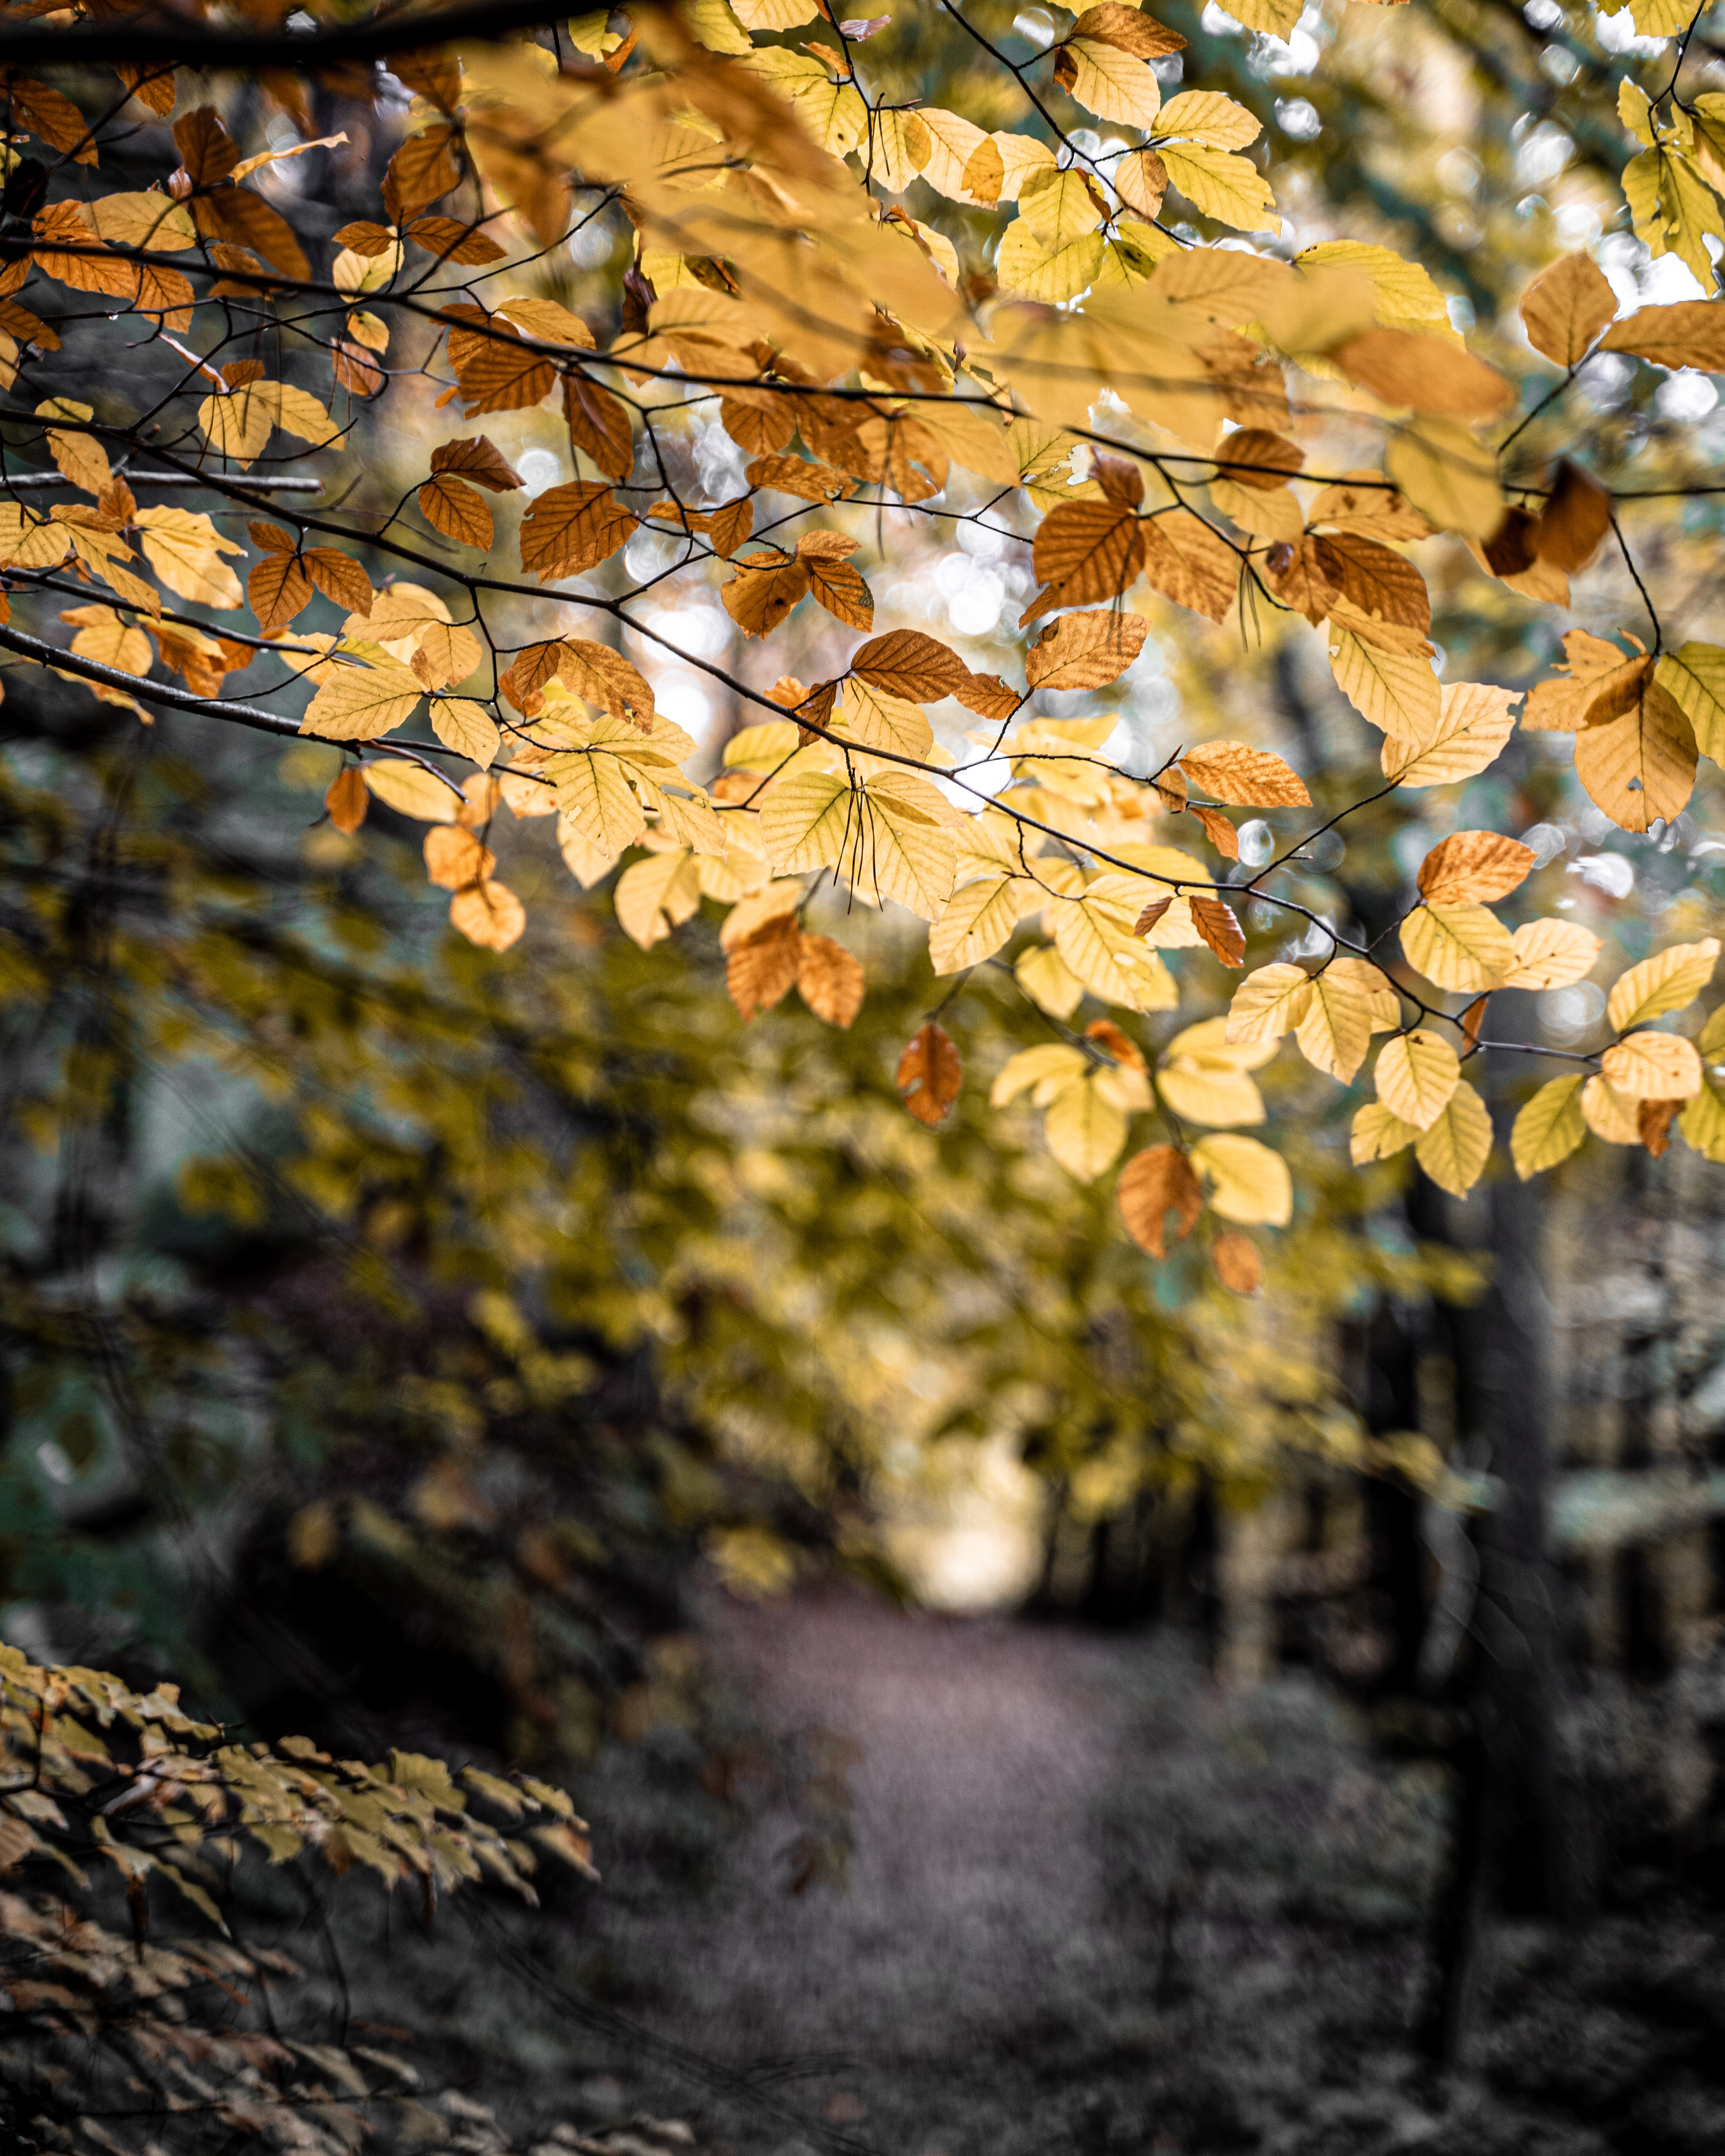 Yellow Leaves on Tree Branch